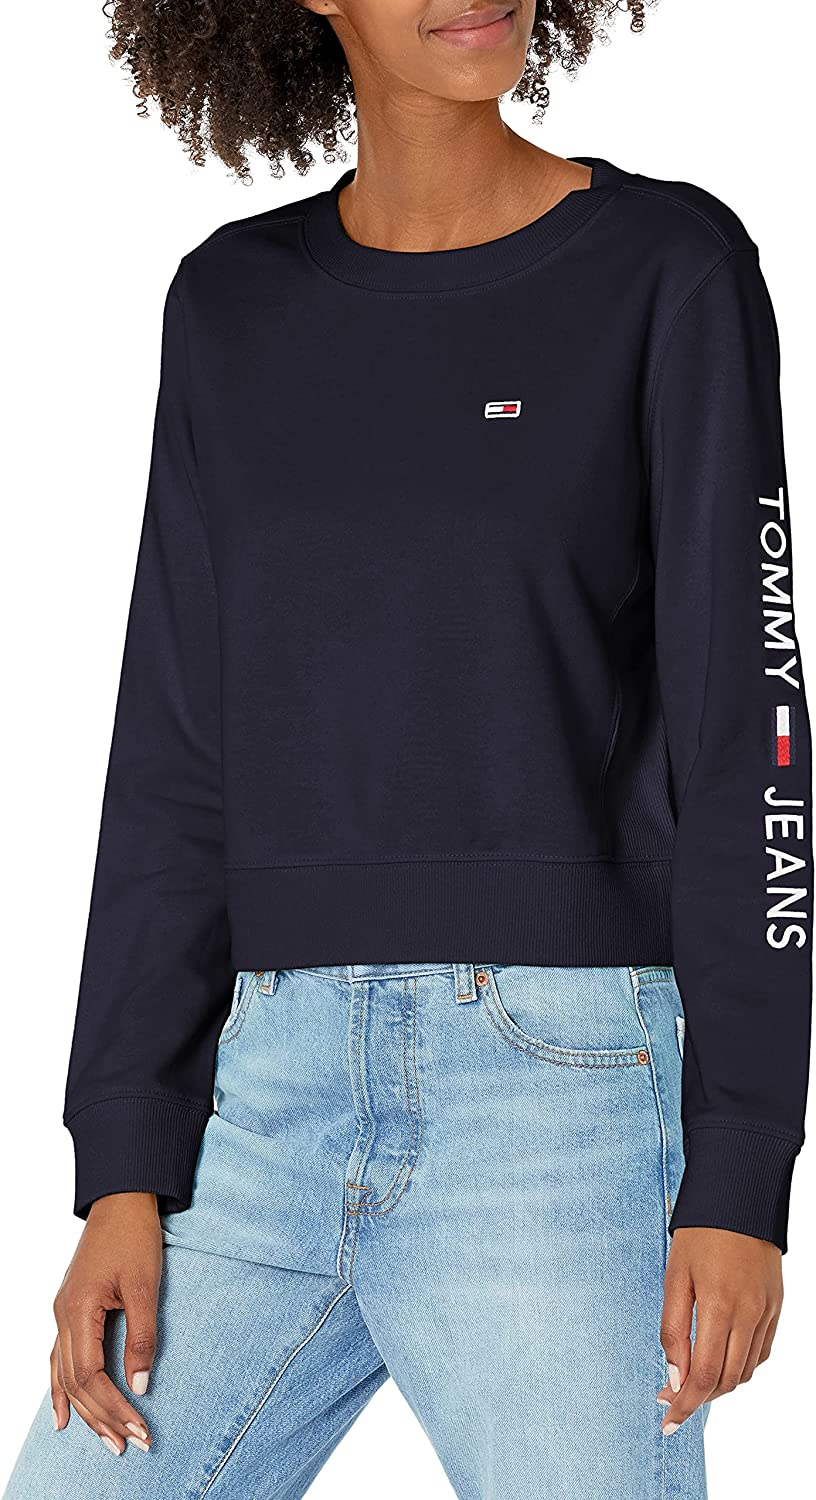 Tommy Manufacturer OFFicial shop Hilfiger Women's In a popularity Sweatshirt Crewneck Classic